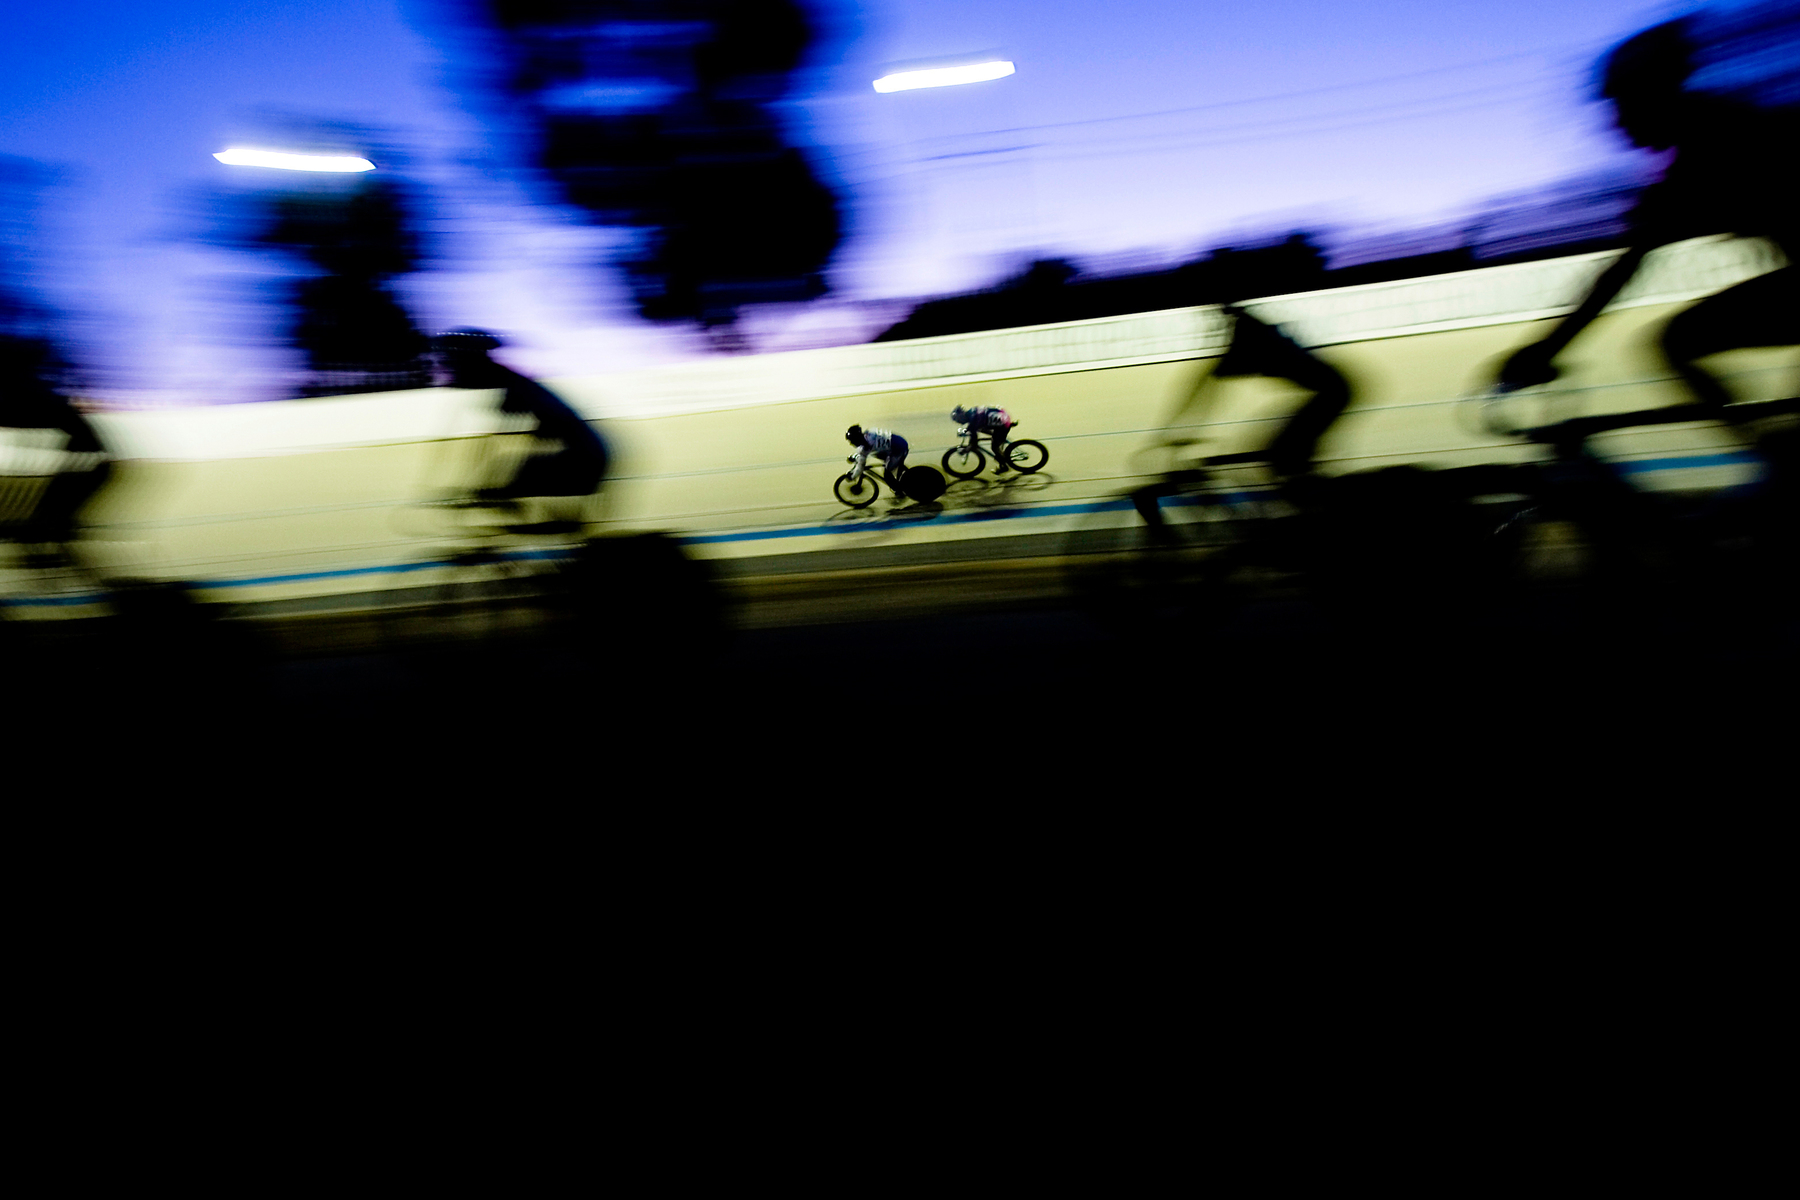 eam Spiderman's Nelson Li, right, closes in on Team Hollywood Alliance's Anton Quist during the sprint final at the U.S. Masters Track Cycling Championship at Hellyer Park Velodrome in San Jose, Calif.